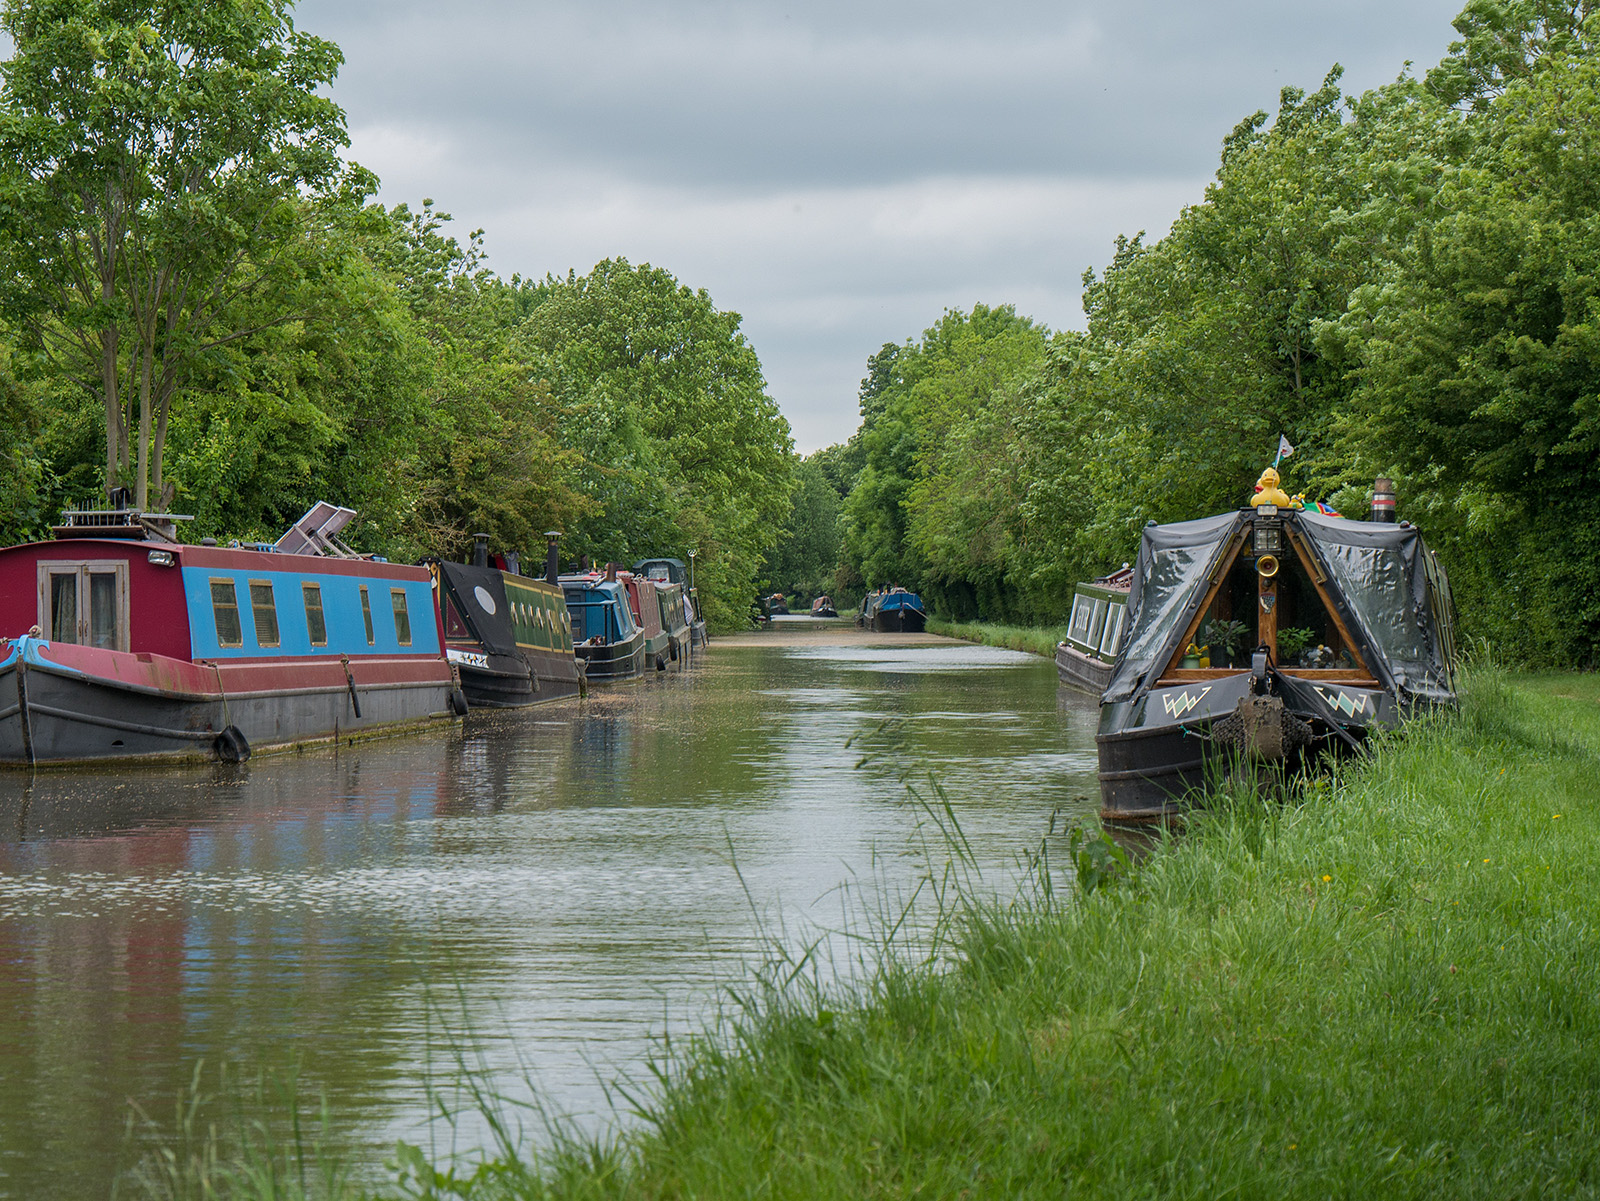 Heading north from Weedon